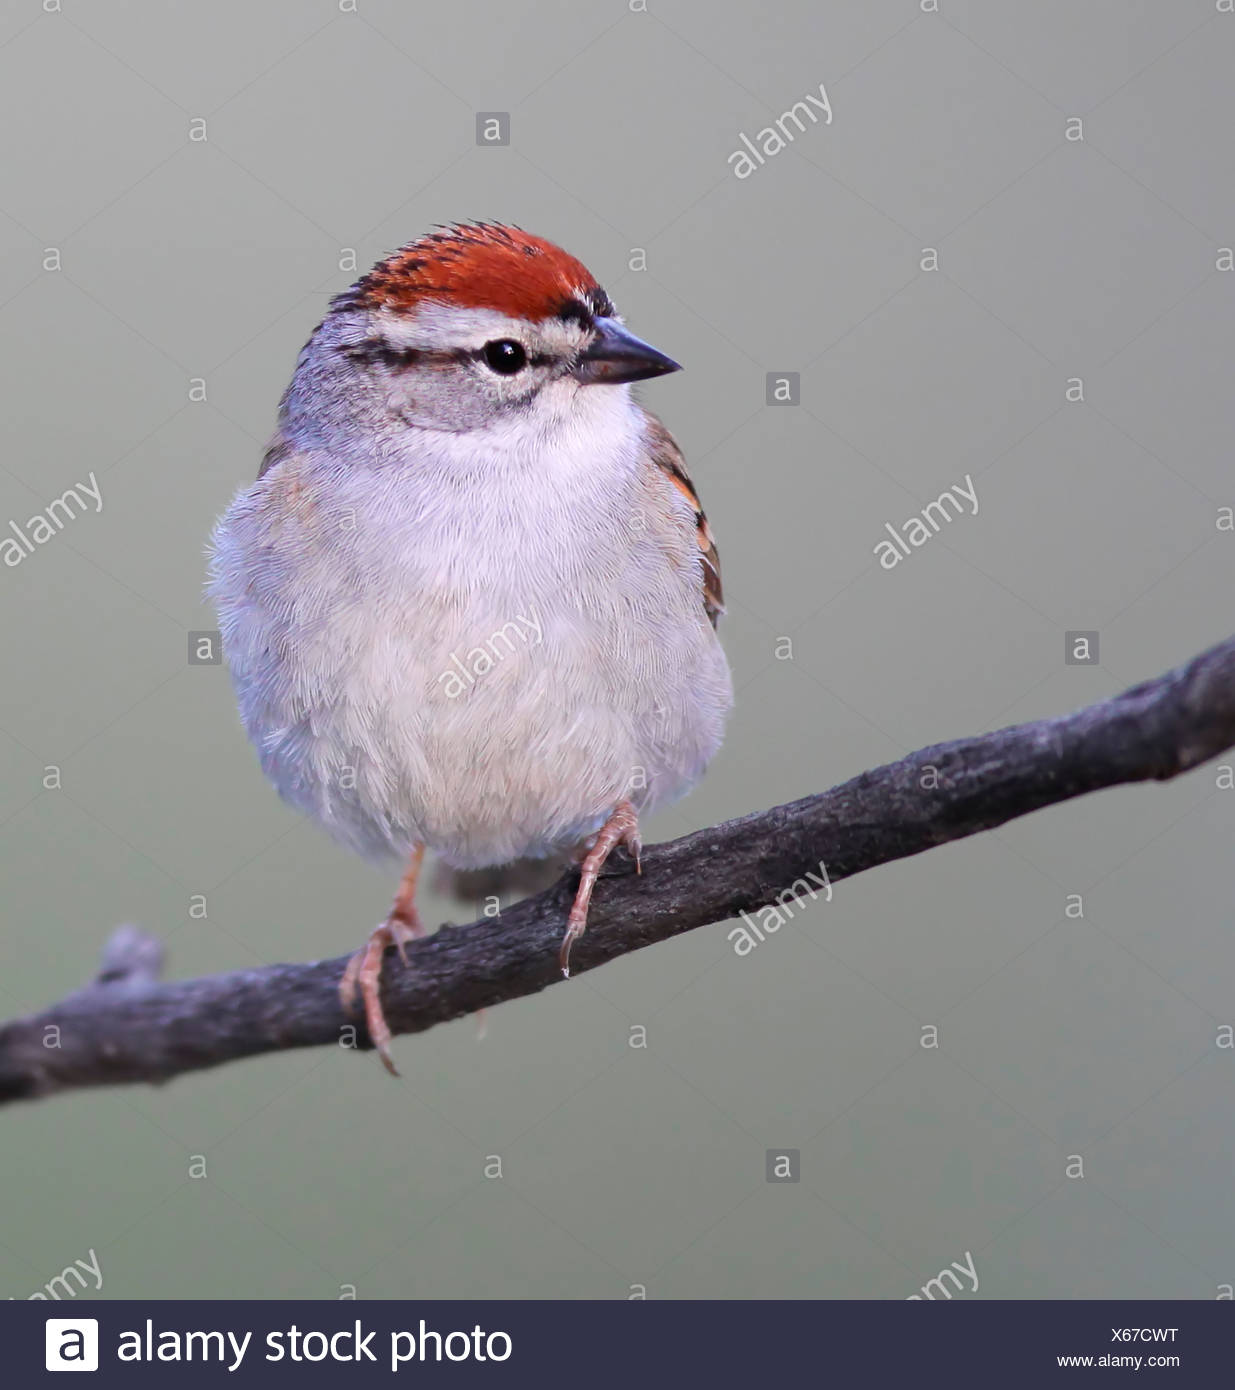 Chipping Sparrow Perch, Spizella passerina - Stock Image